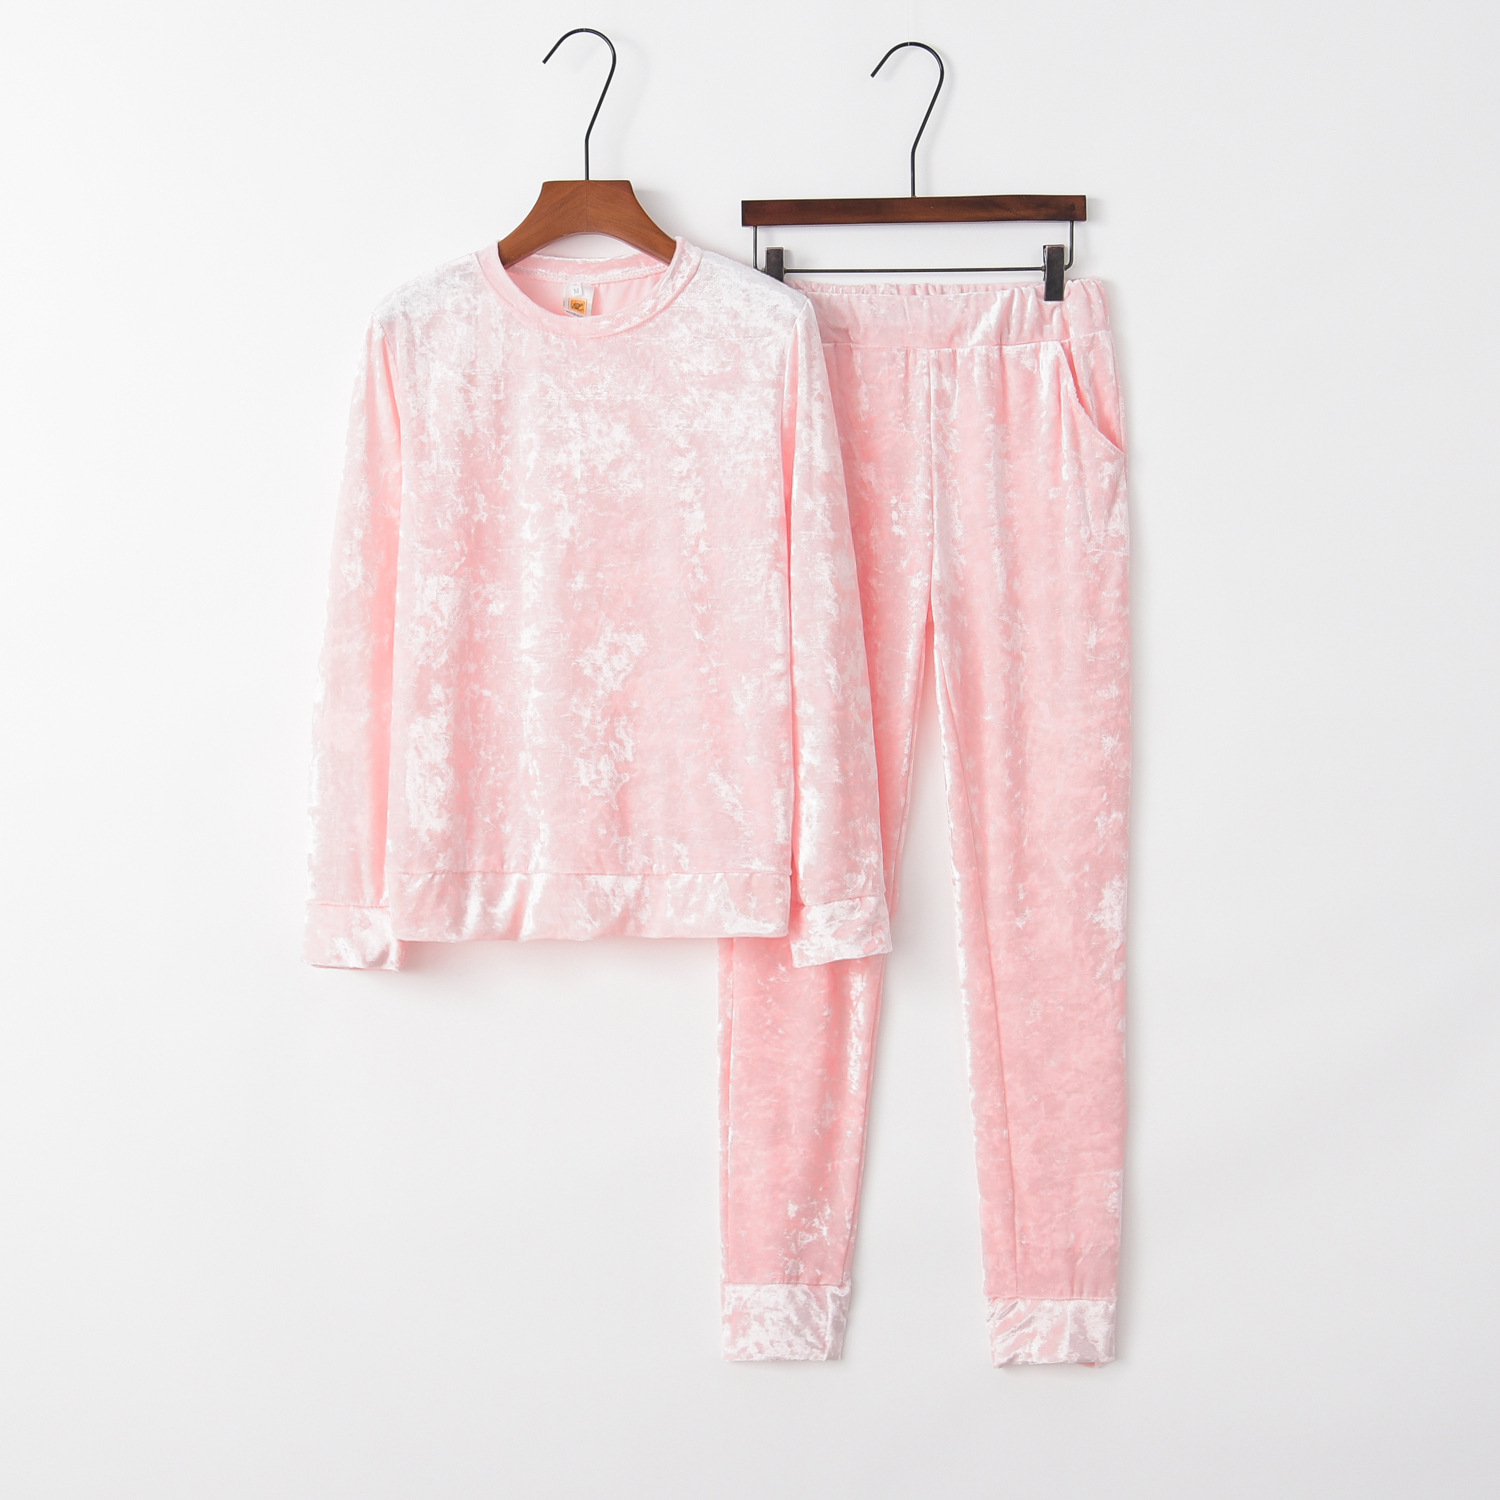 Solid Pink 2020 New Design Fashion Hot Sale Suit Set Women Tracksuit Two-piece Style Outfit Sweatshirt Sport Wear